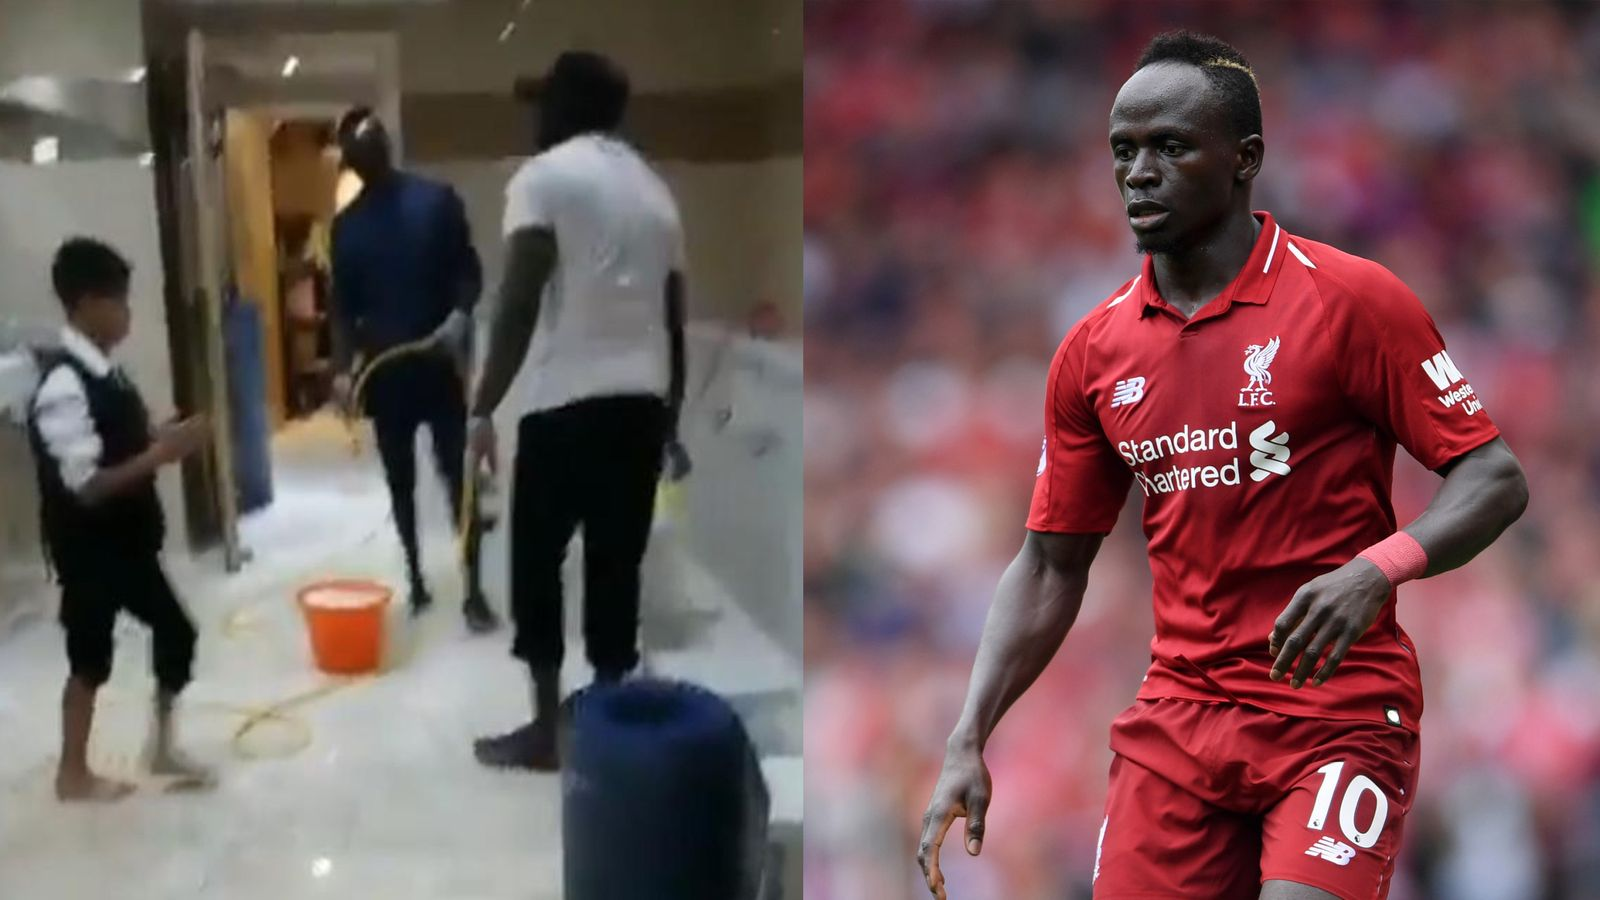 Liverpool Star Sadio Mane Cleans Mosque Toilets After Win